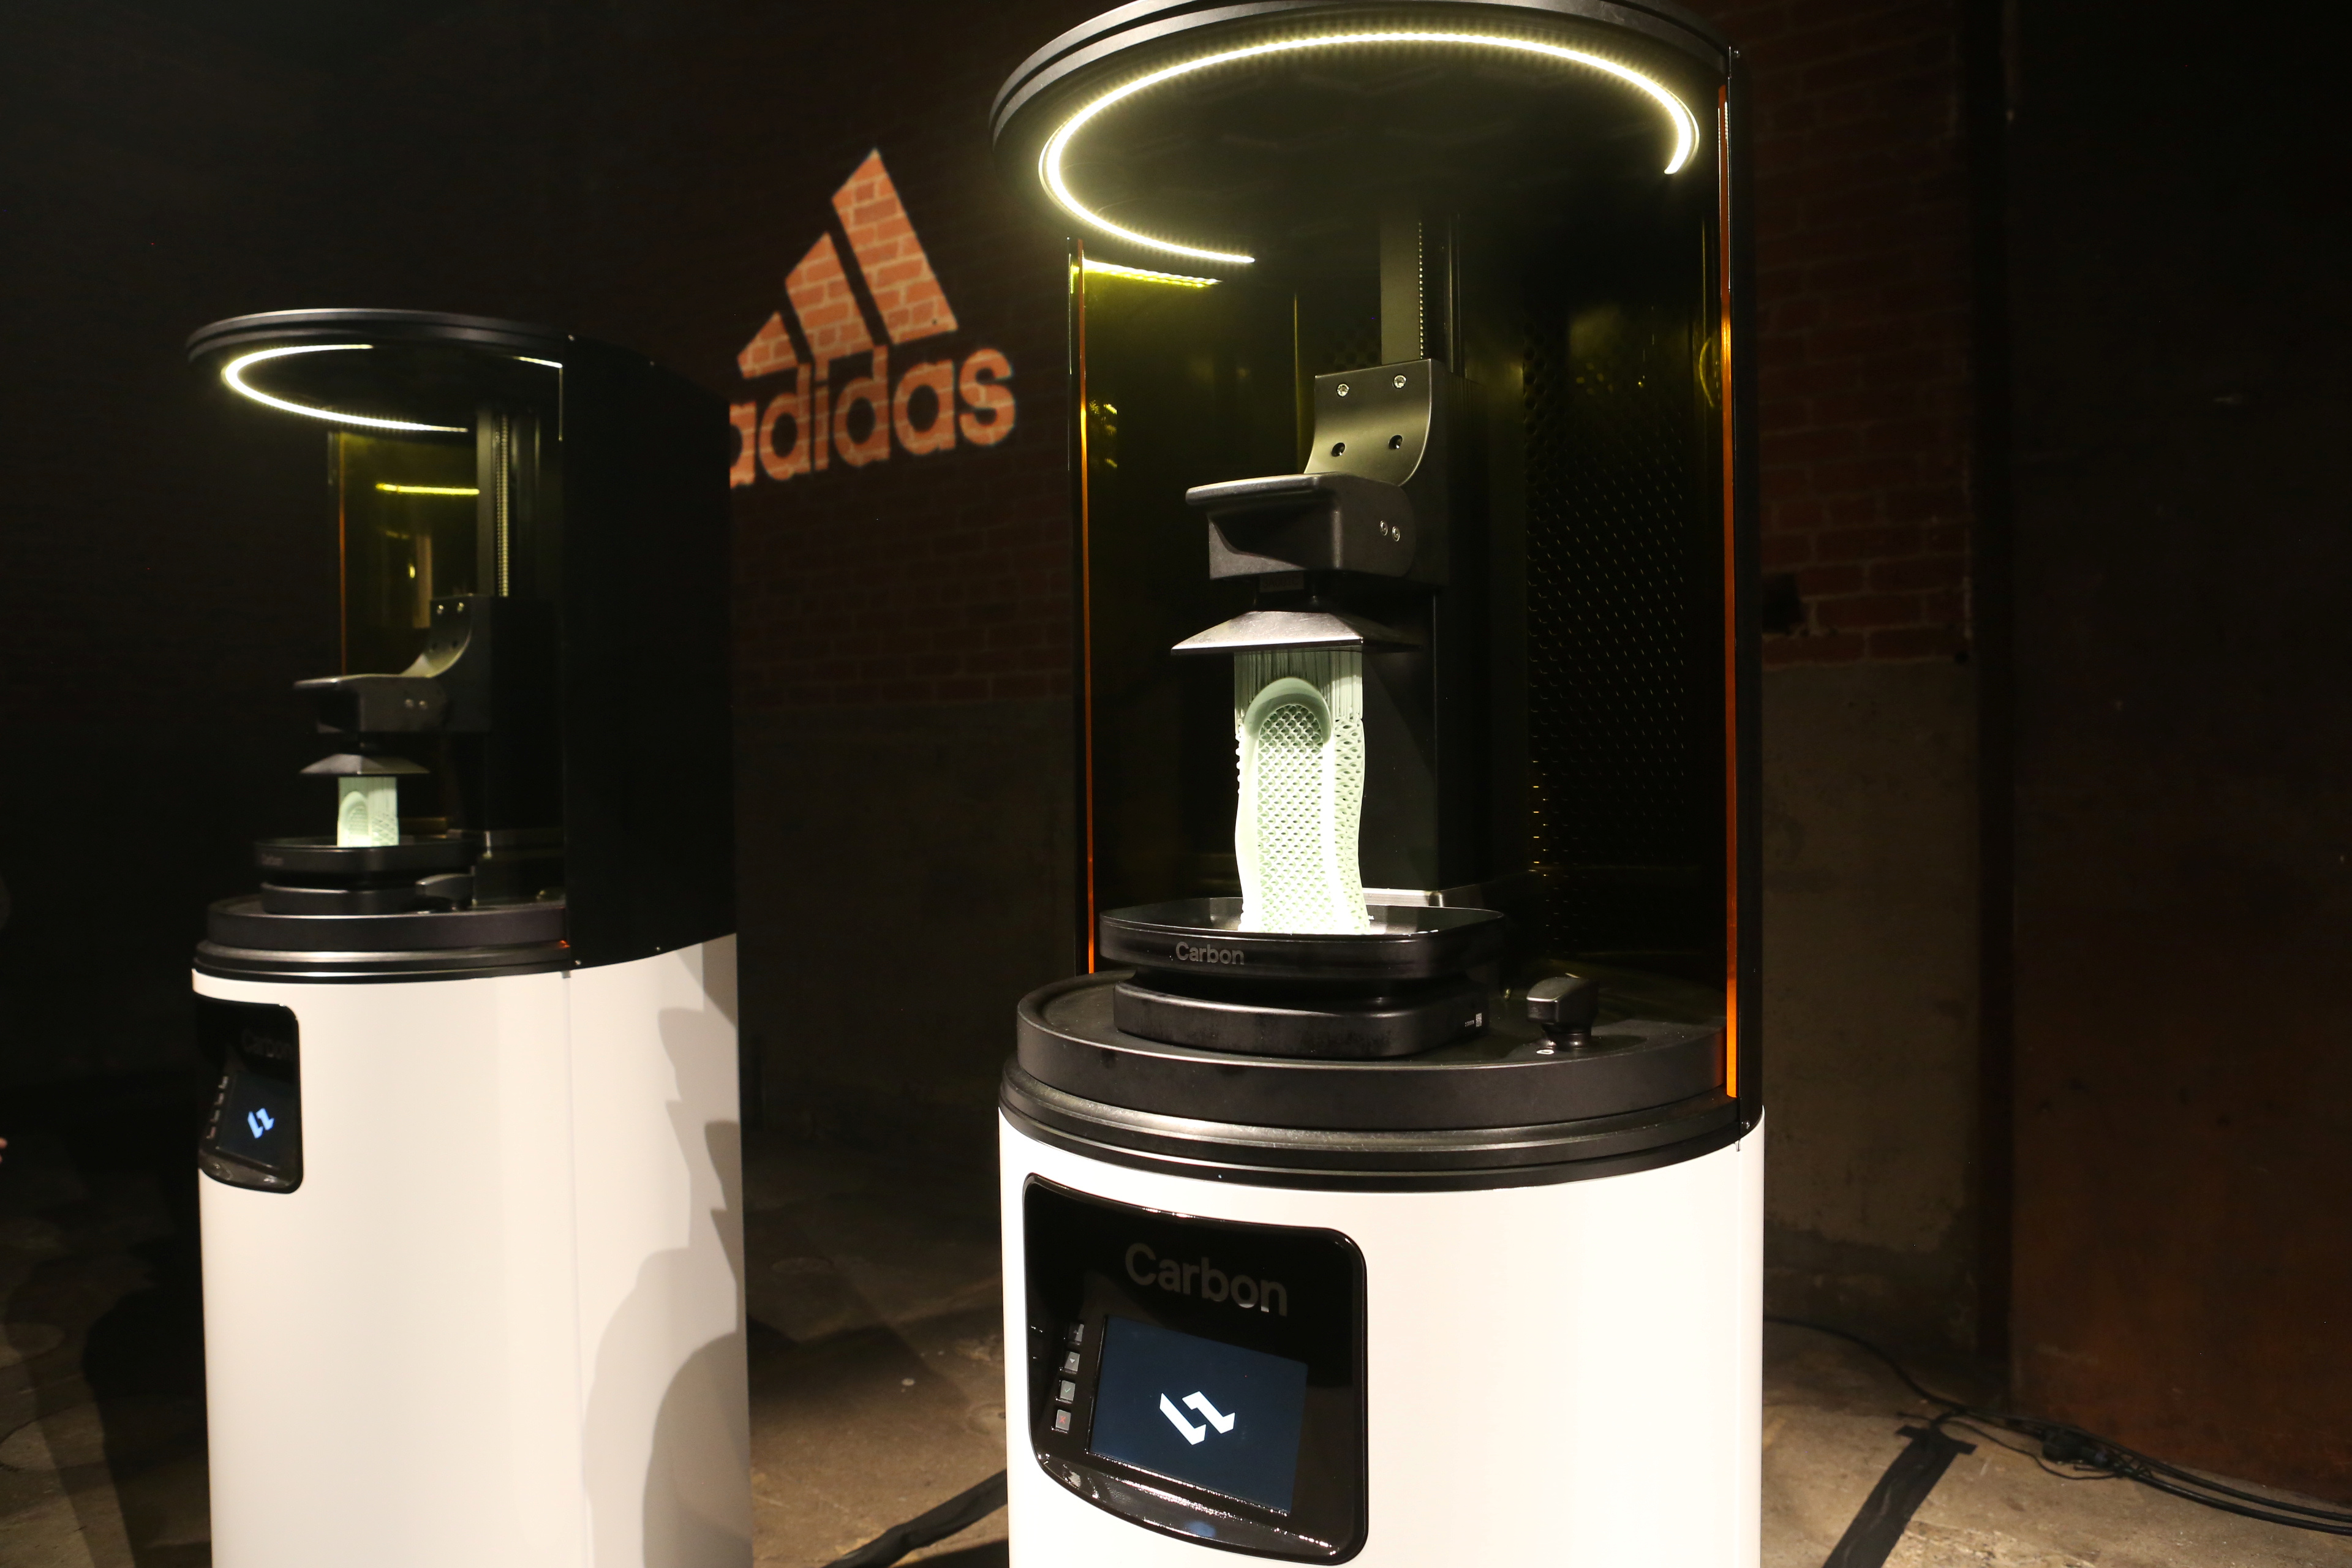 Carbon 3D printing machines are seen at an unveiling event for the new Adidas Futurecraft shoe in New York City, New York, U.S. April 6, 2017. REUTERS/Joe Penney - RTX34HDY